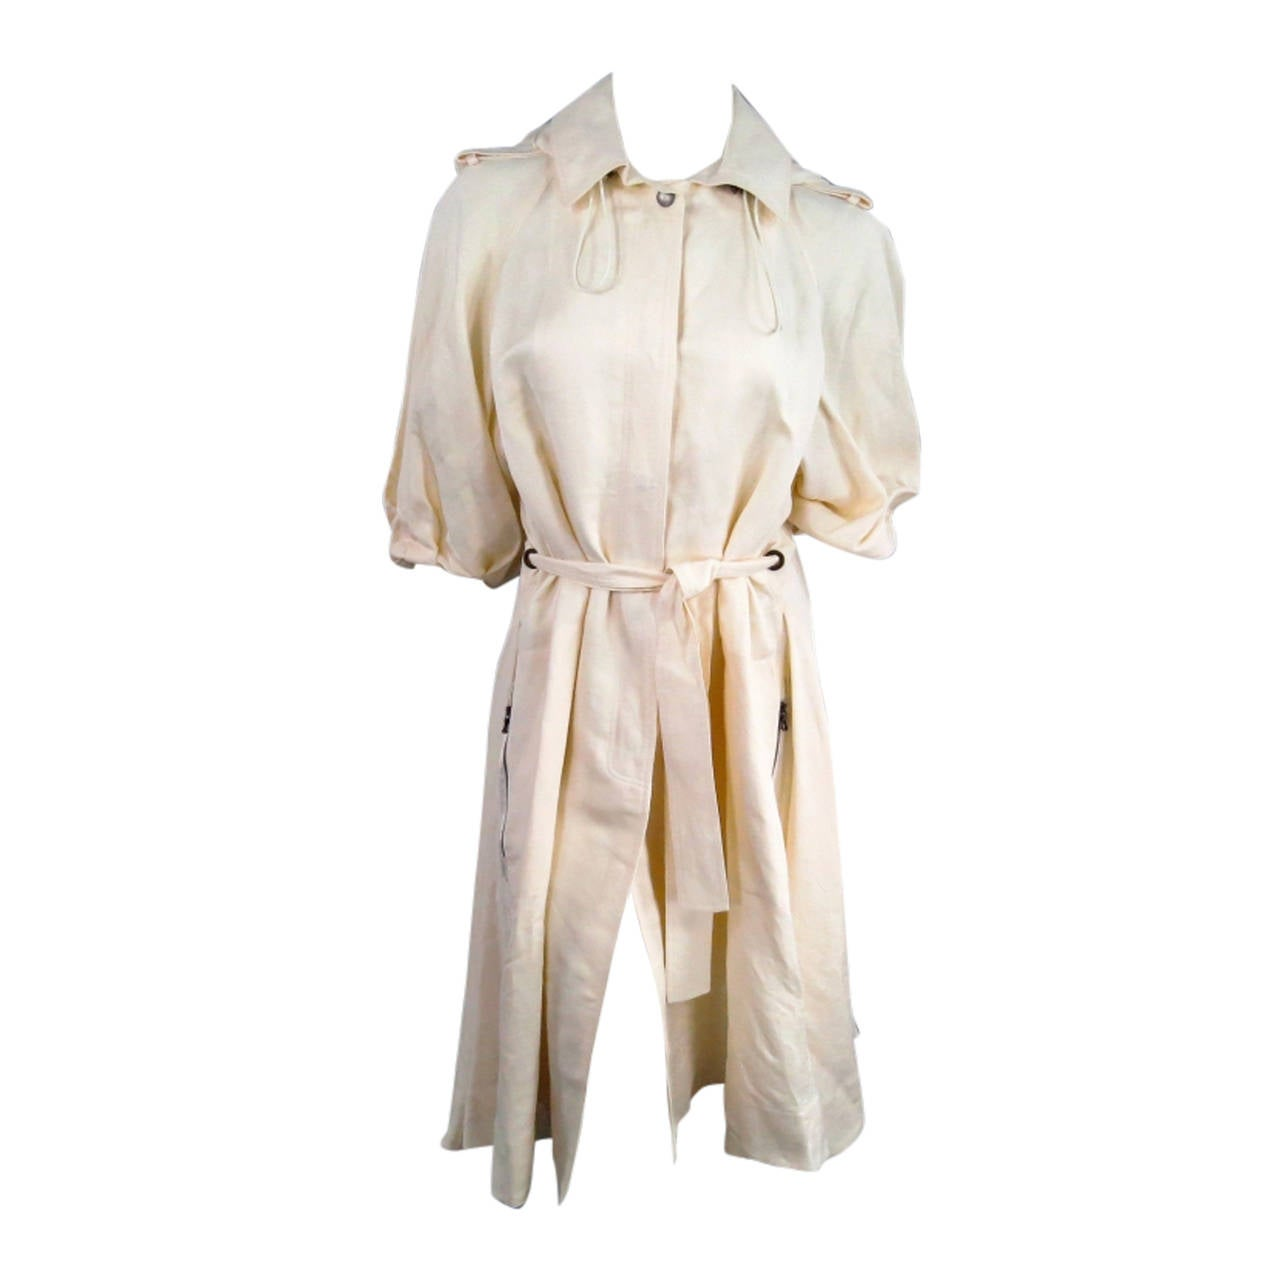 LANVIN Size 8 Cream Full Skirt Trench Coat with Zip Hood 2006 For Sale